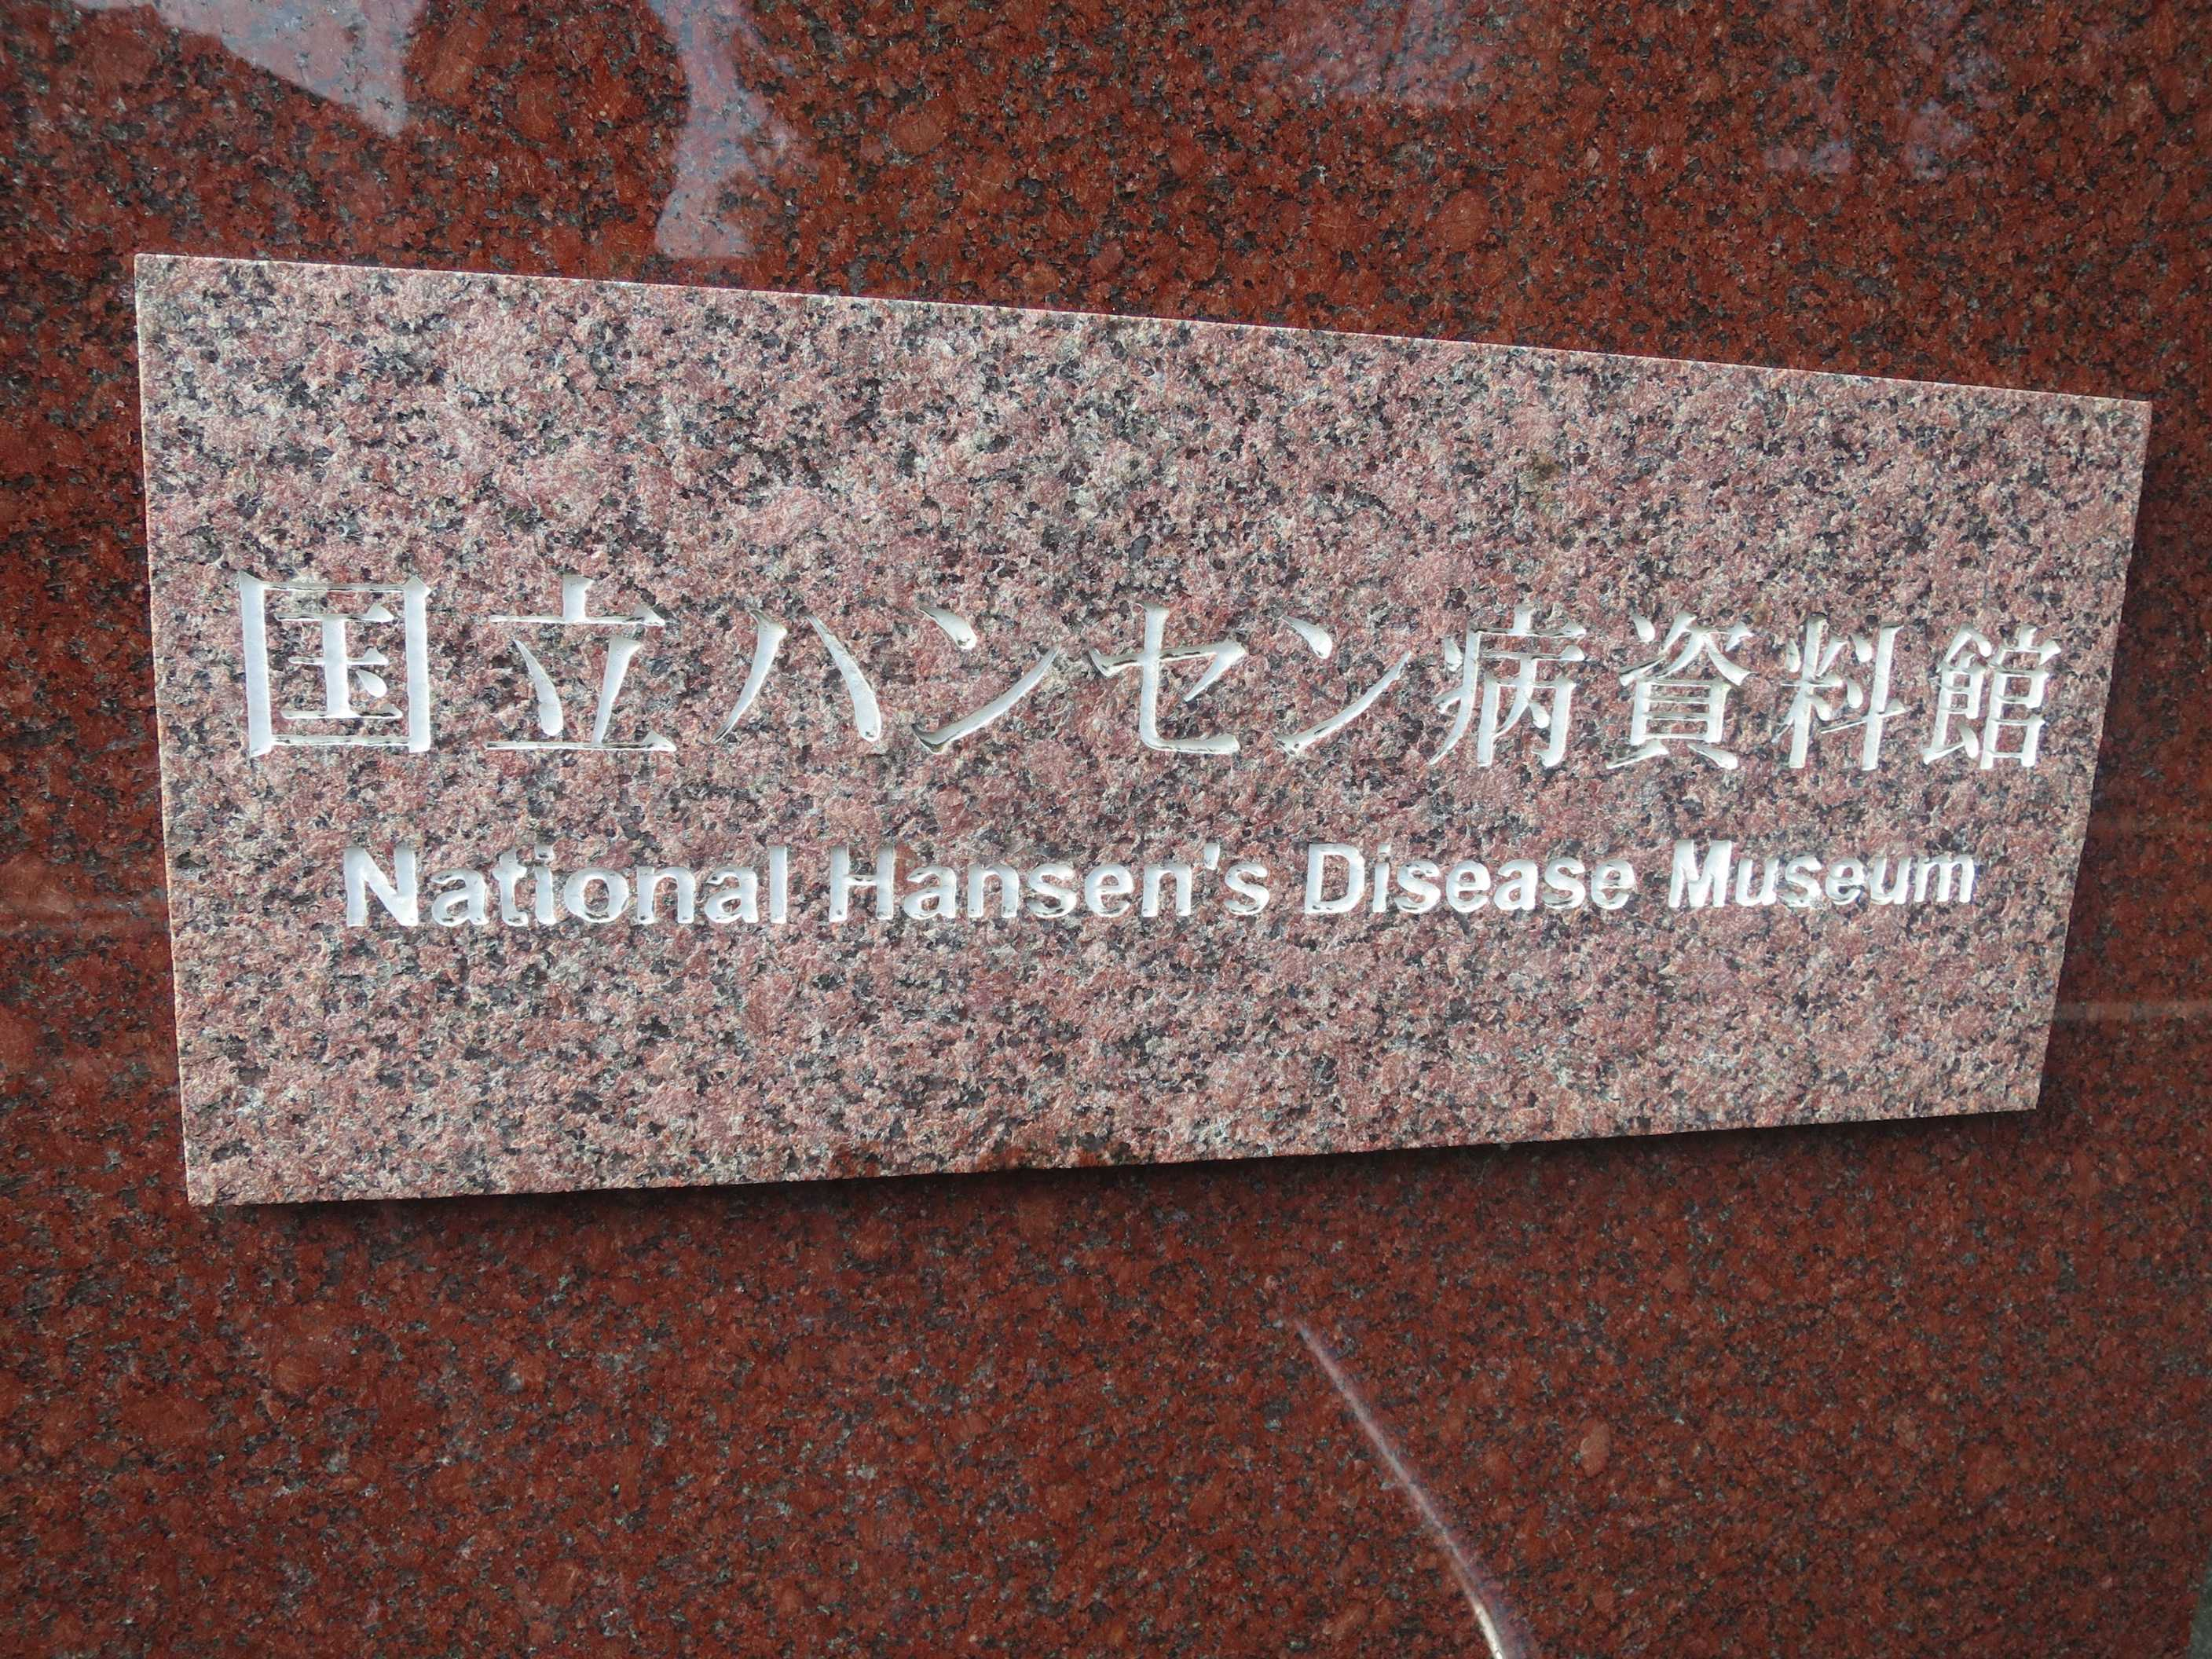 National Hansens Disease Museum